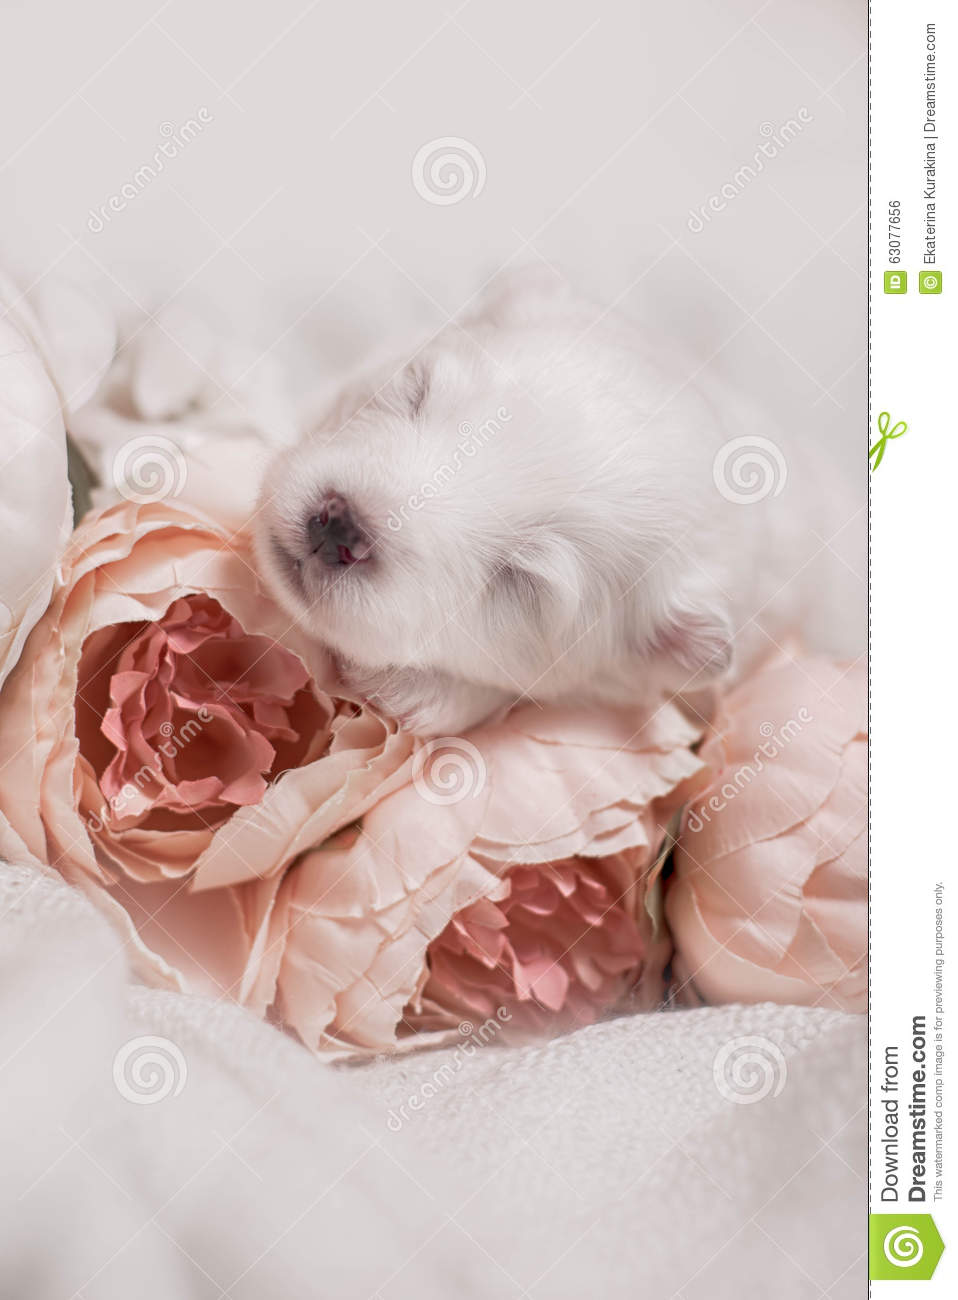 Download Chiot Blanc De Sommeil Adorable Photo stock - Image du beige, verticale: 63077656